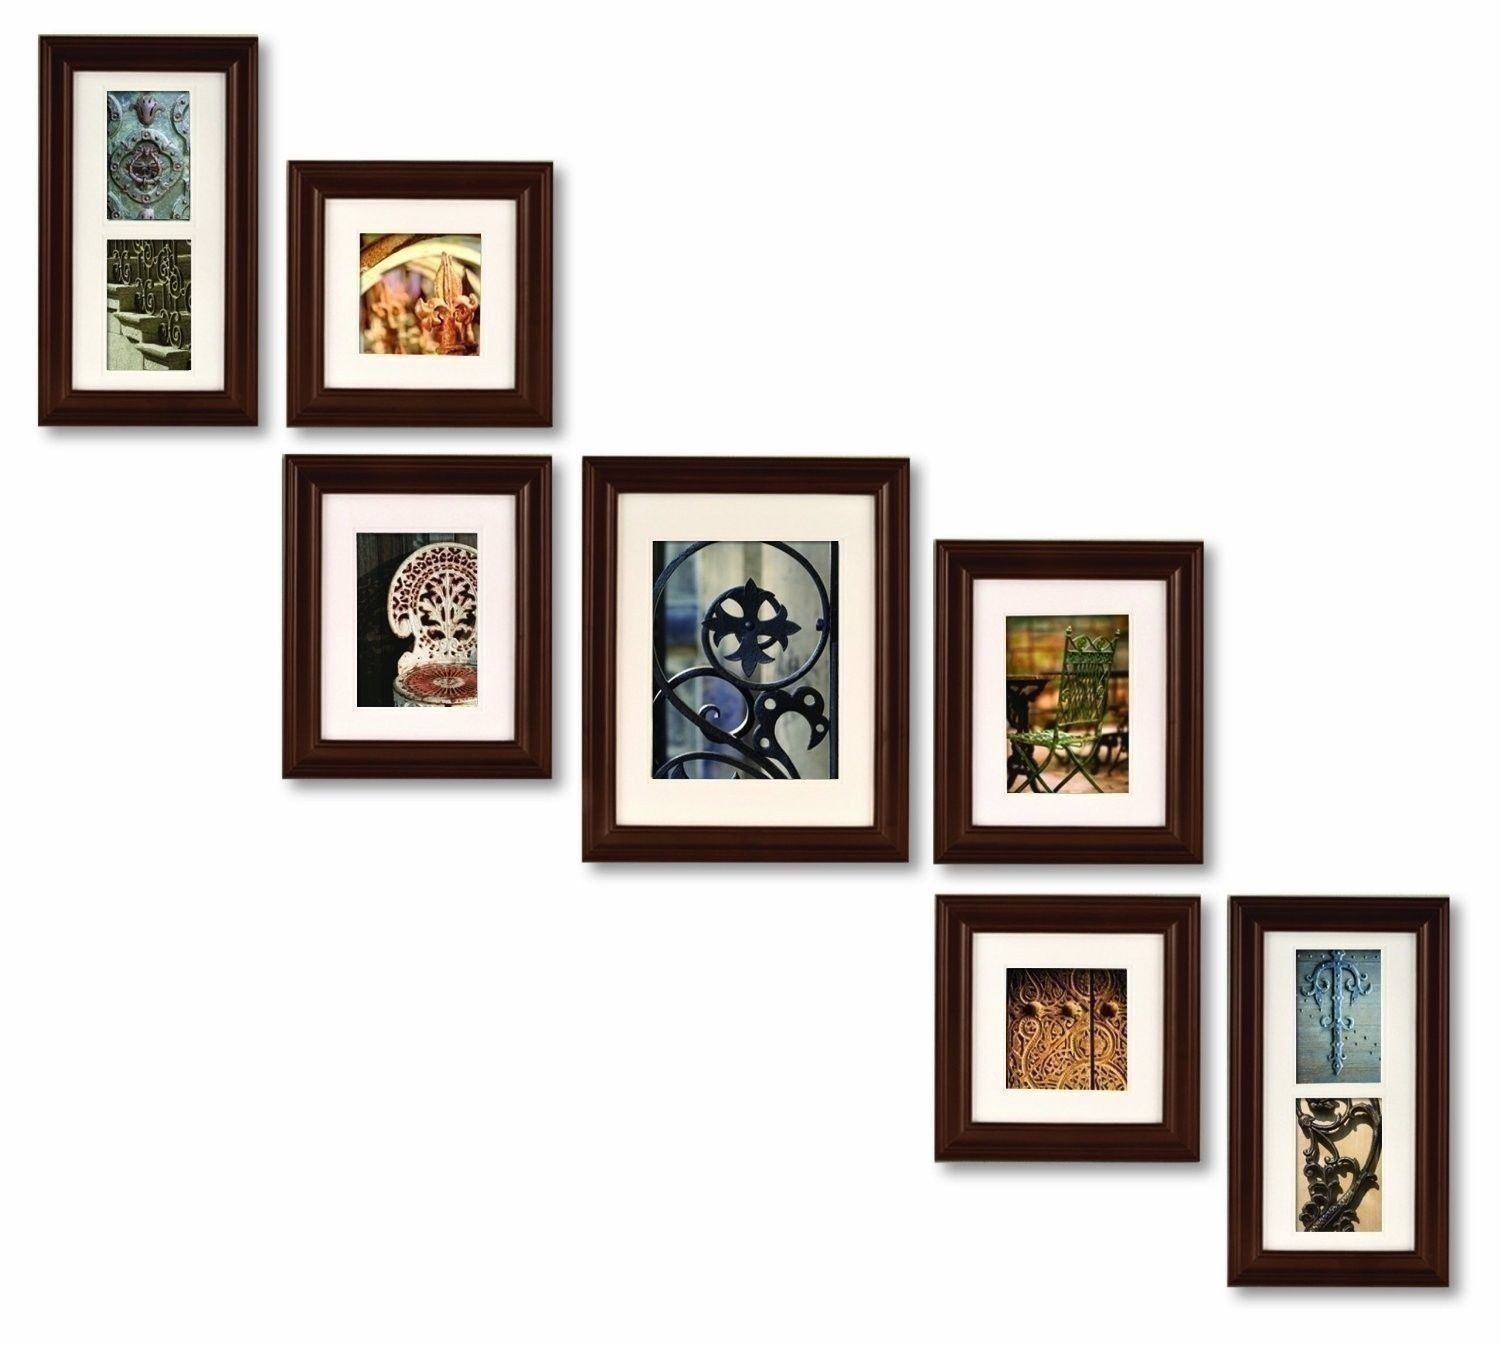 wall frames set new set 7 brown wood picture photo frames frame staircase stairs - Wood Picture Frame Set